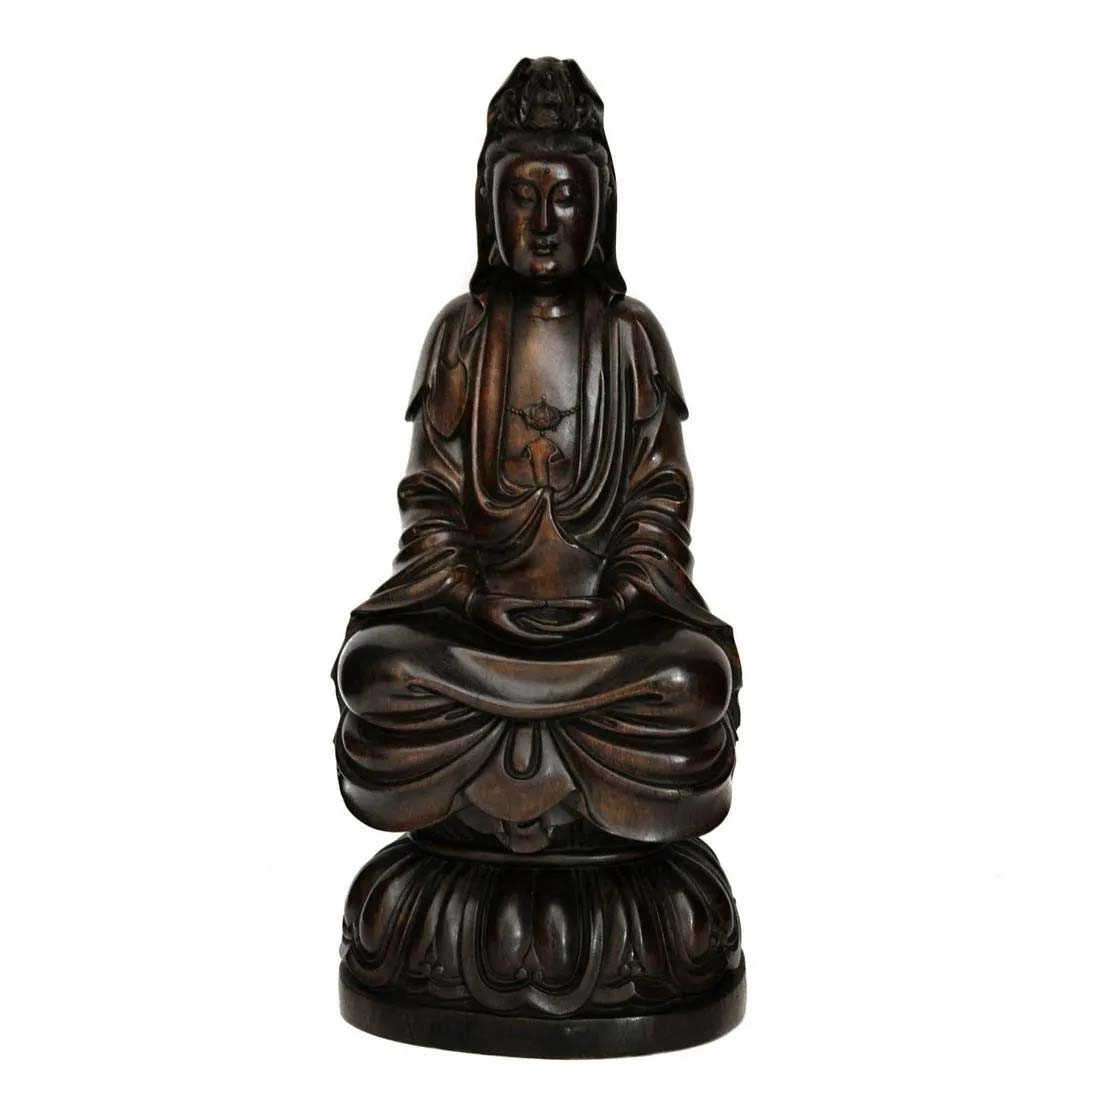 Zitan Guanyin on lotus seat, Qing Dynasty, $6,000-$8,000. Image courtesy Gianguan Auctions